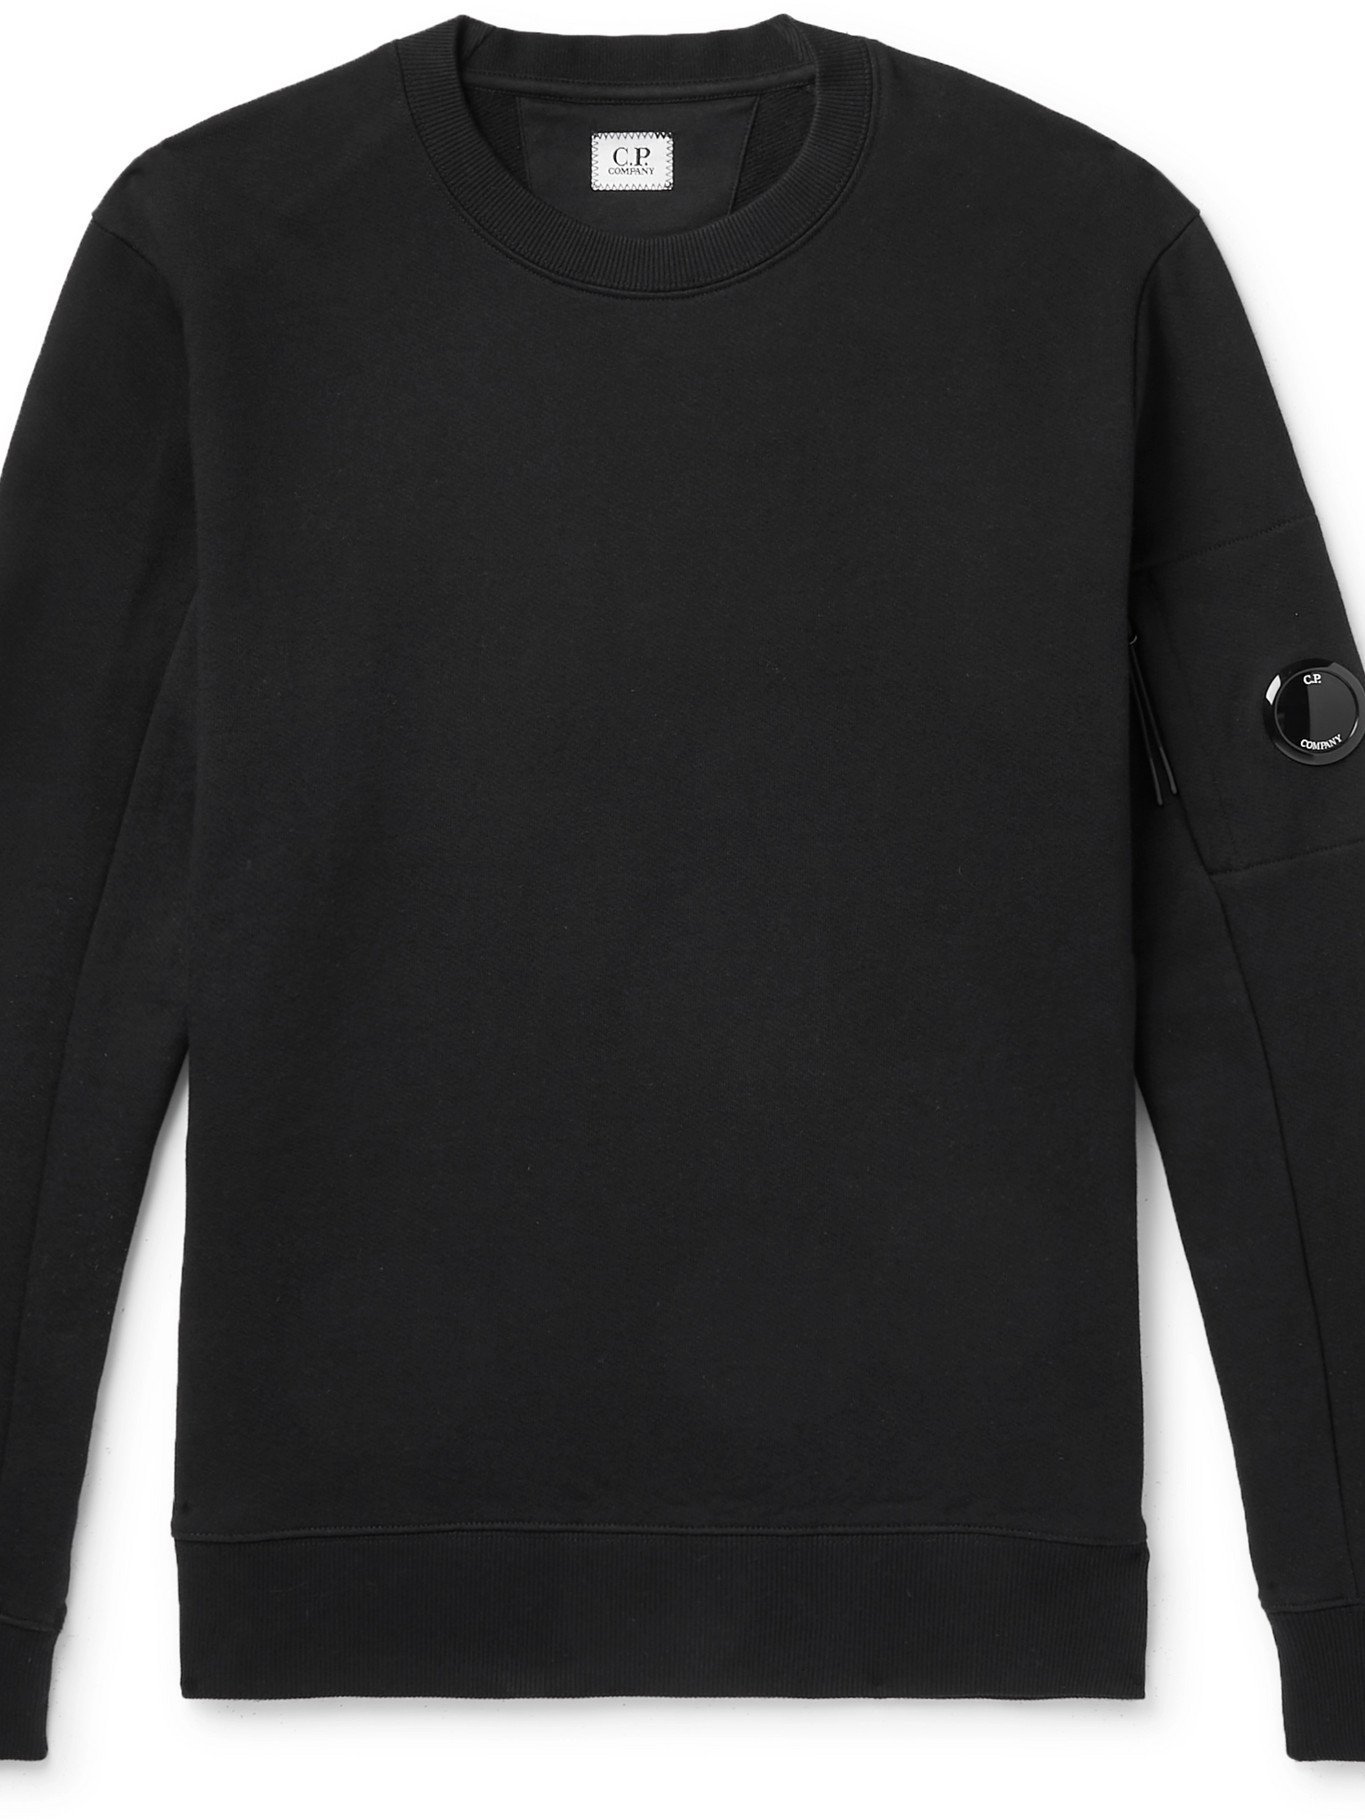 Photo: C.P. COMPANY - Logo-Appliquéd Fleece-Back Cotton-Jersey Sweatshirt - Black - L